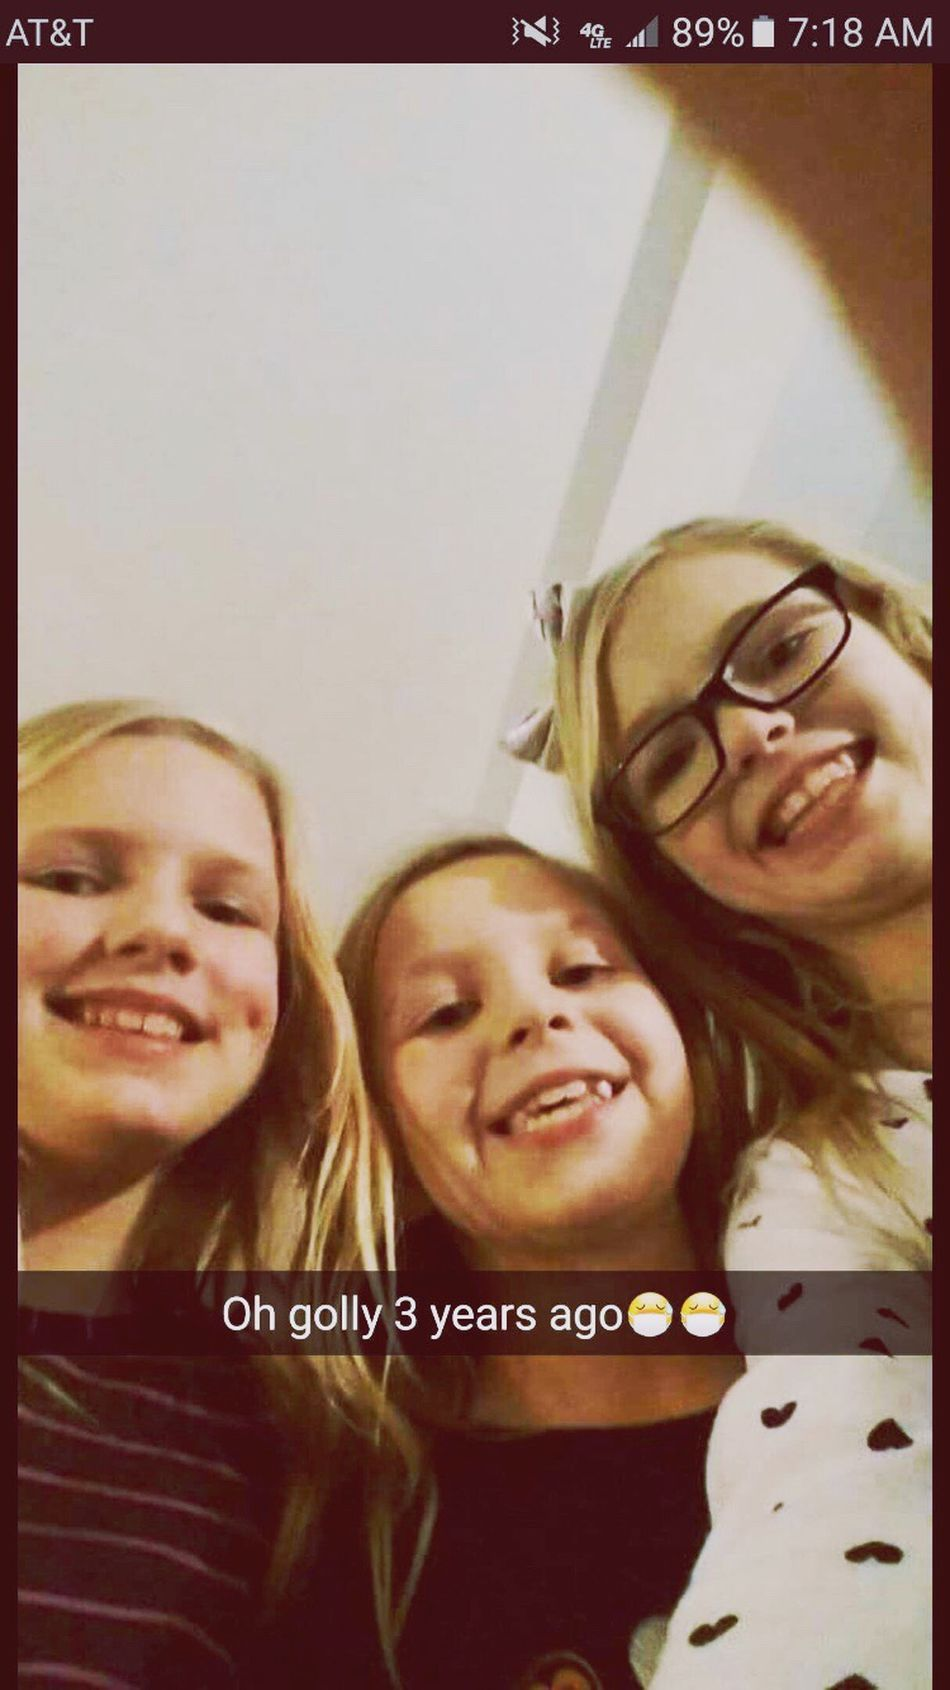 Uniqueness Little Blond Girls Cousins ❤ Man I can't believe this was 3 years ago